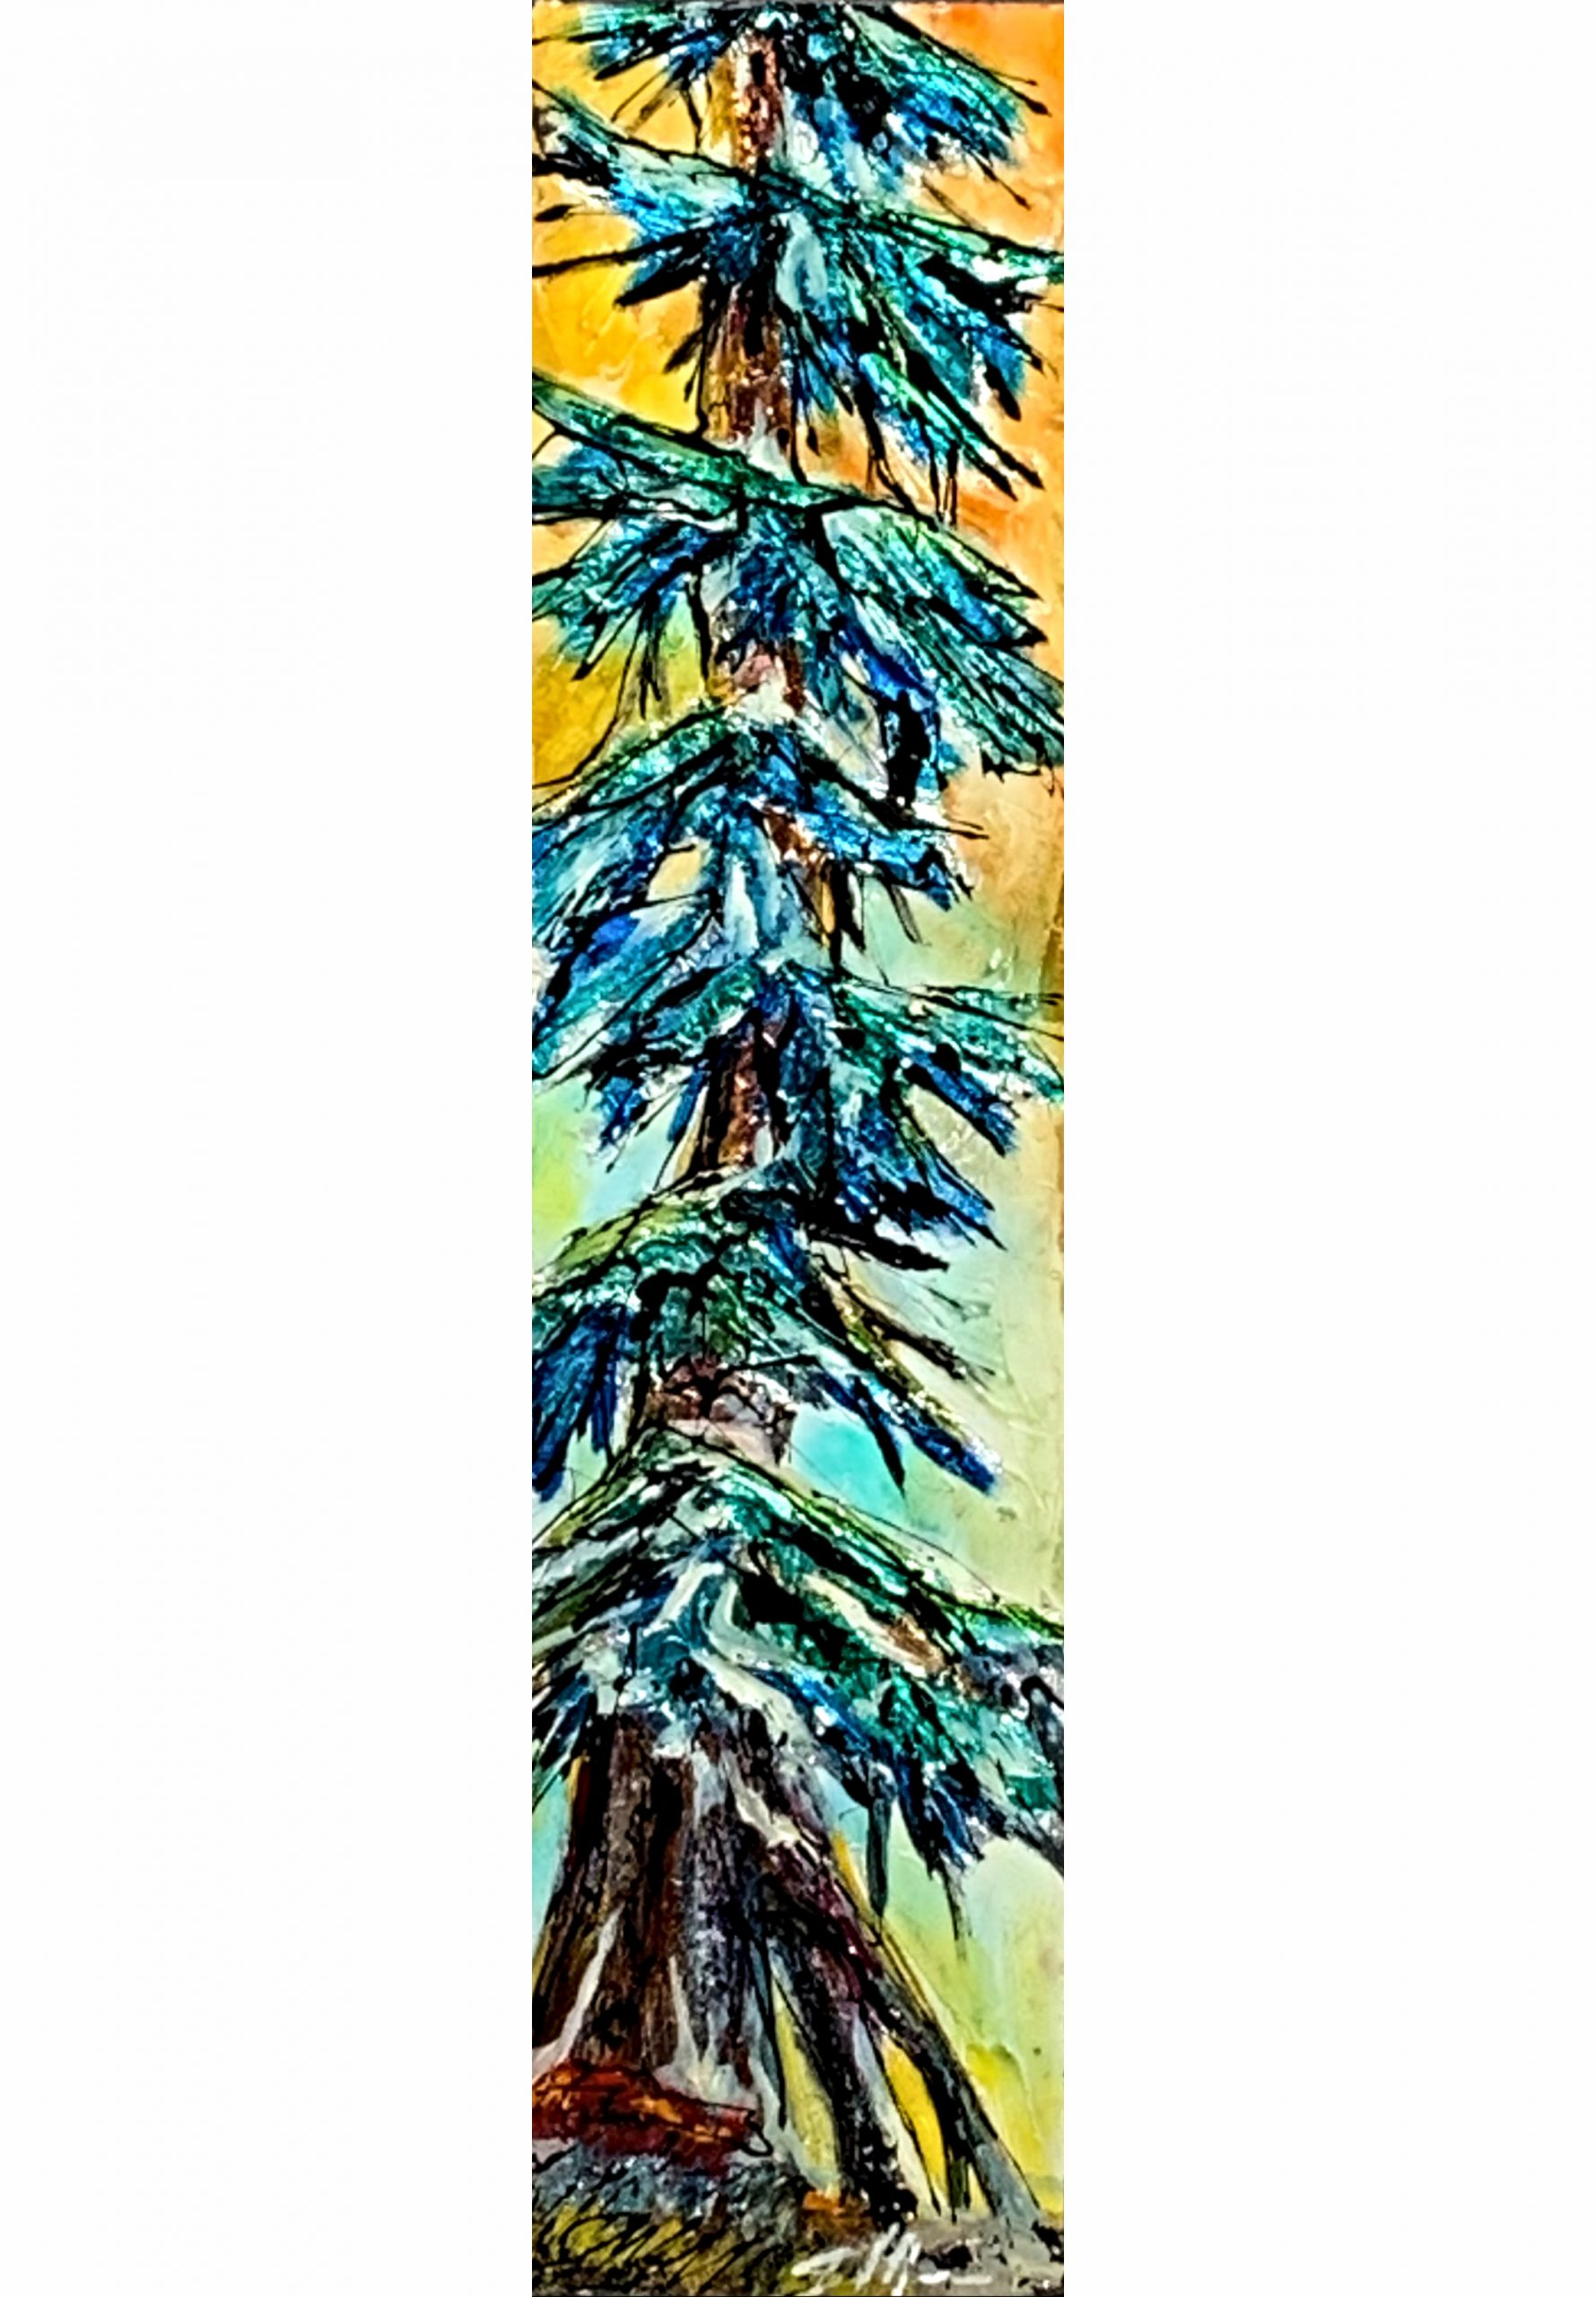 Places that are, mixed media tree painting by David Zimmerman | Effusion Art Gallery + Cast Glass Studio, Invermere BC